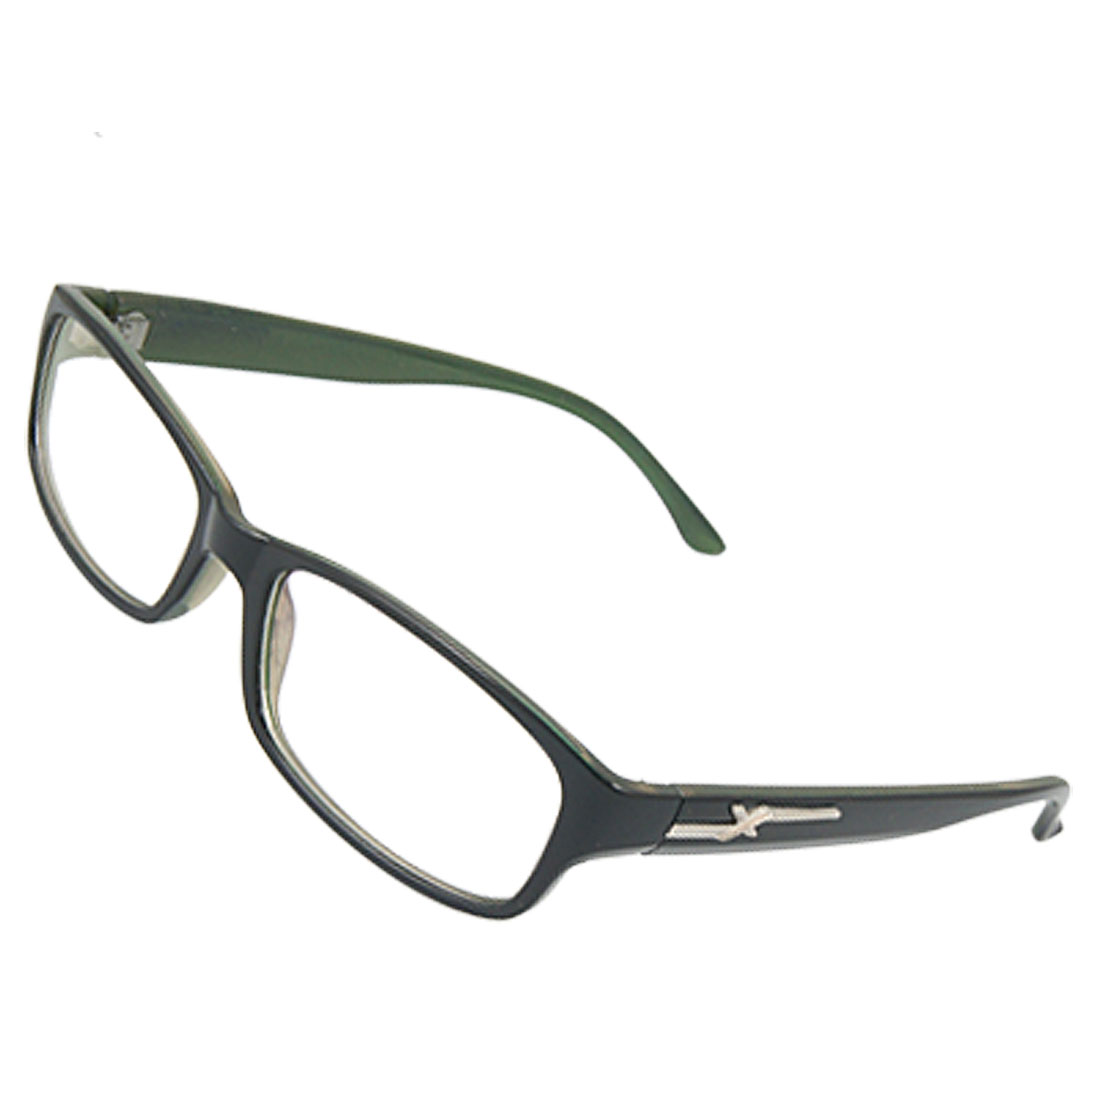 Ladies Full Frame MC Lens Black Green Plano Glasses